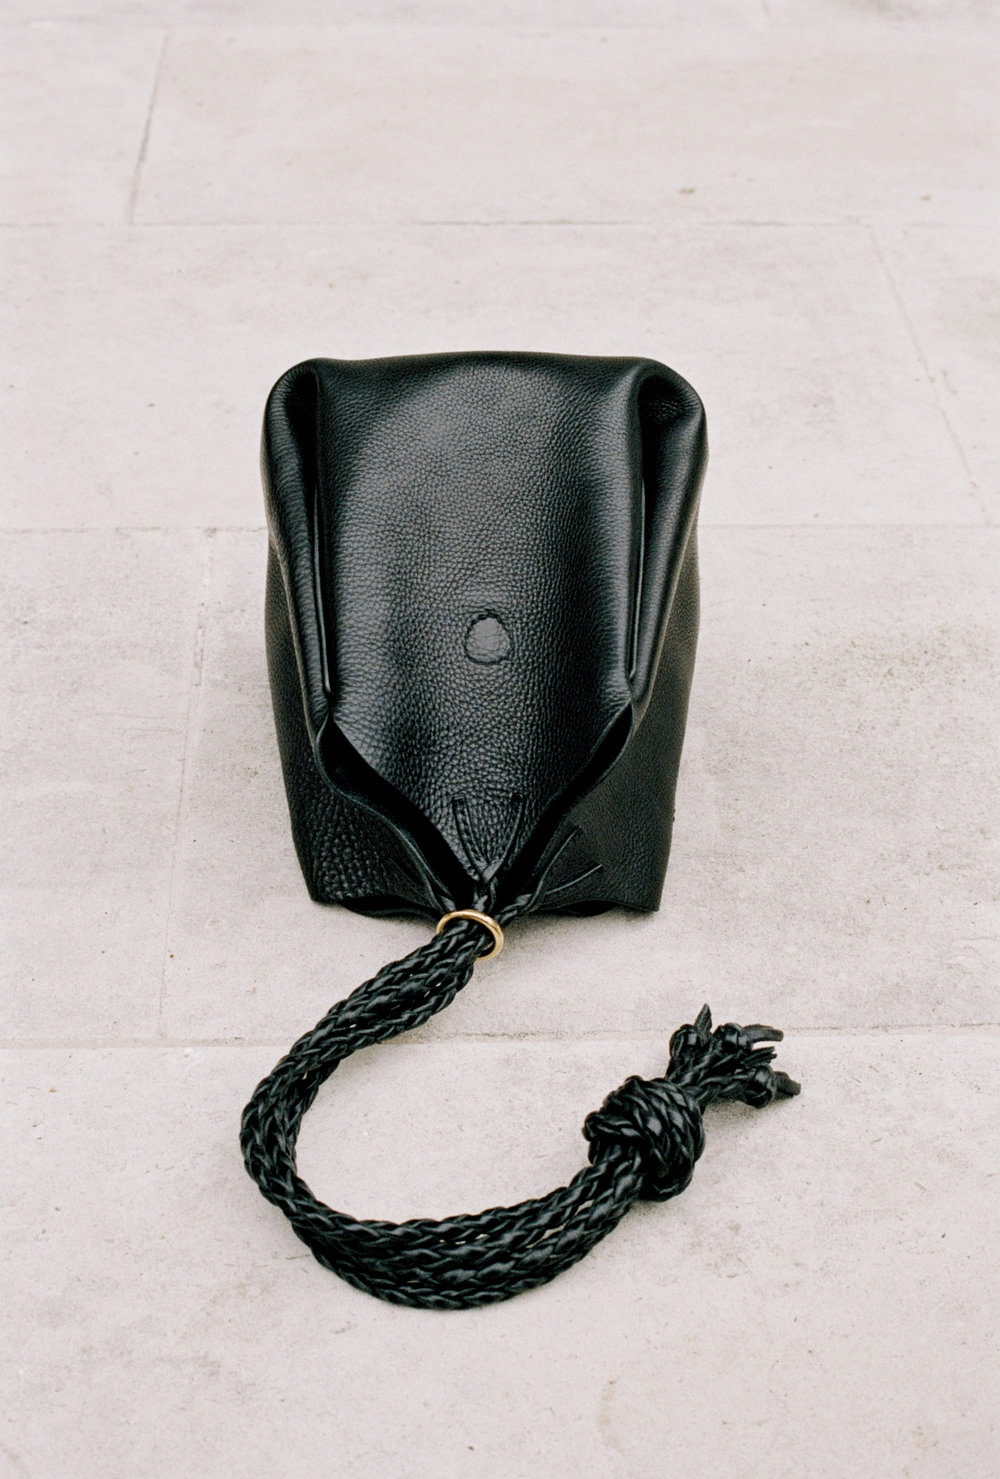 baluchon bag by designer mark tallowin